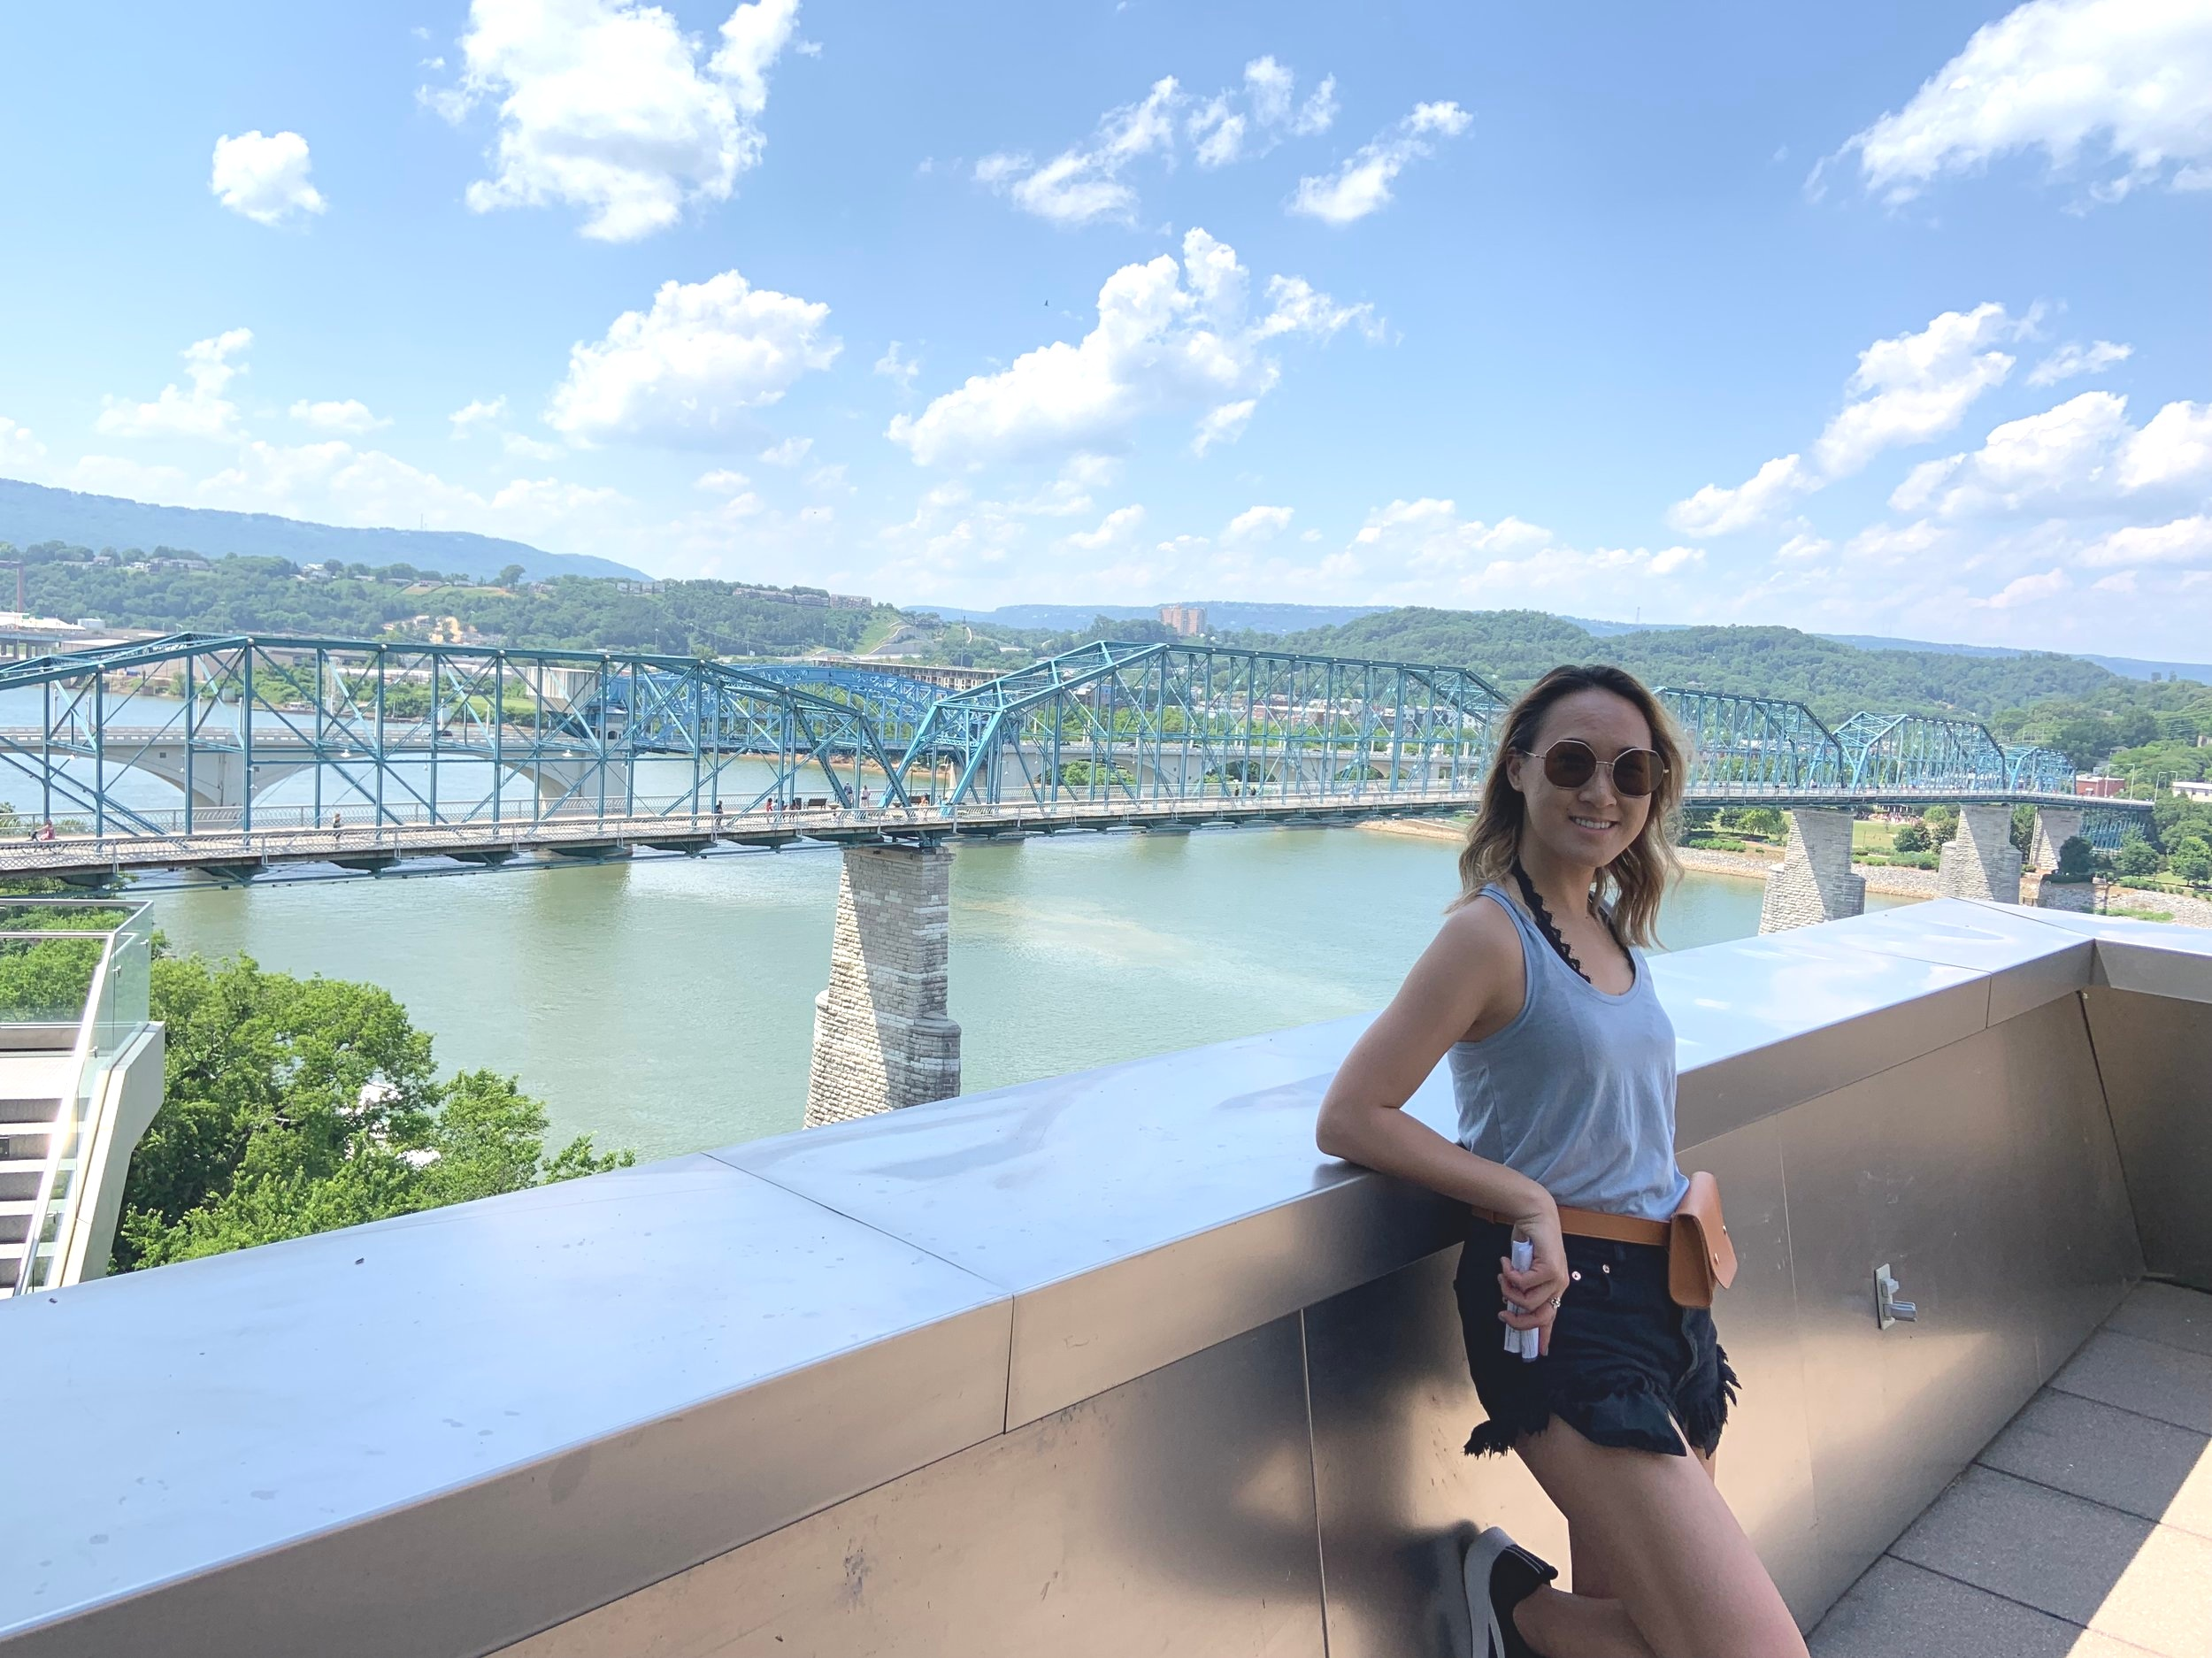 We walked across the Walnut Bridge and went to the Hunter Museum of American Art. Got this view here.